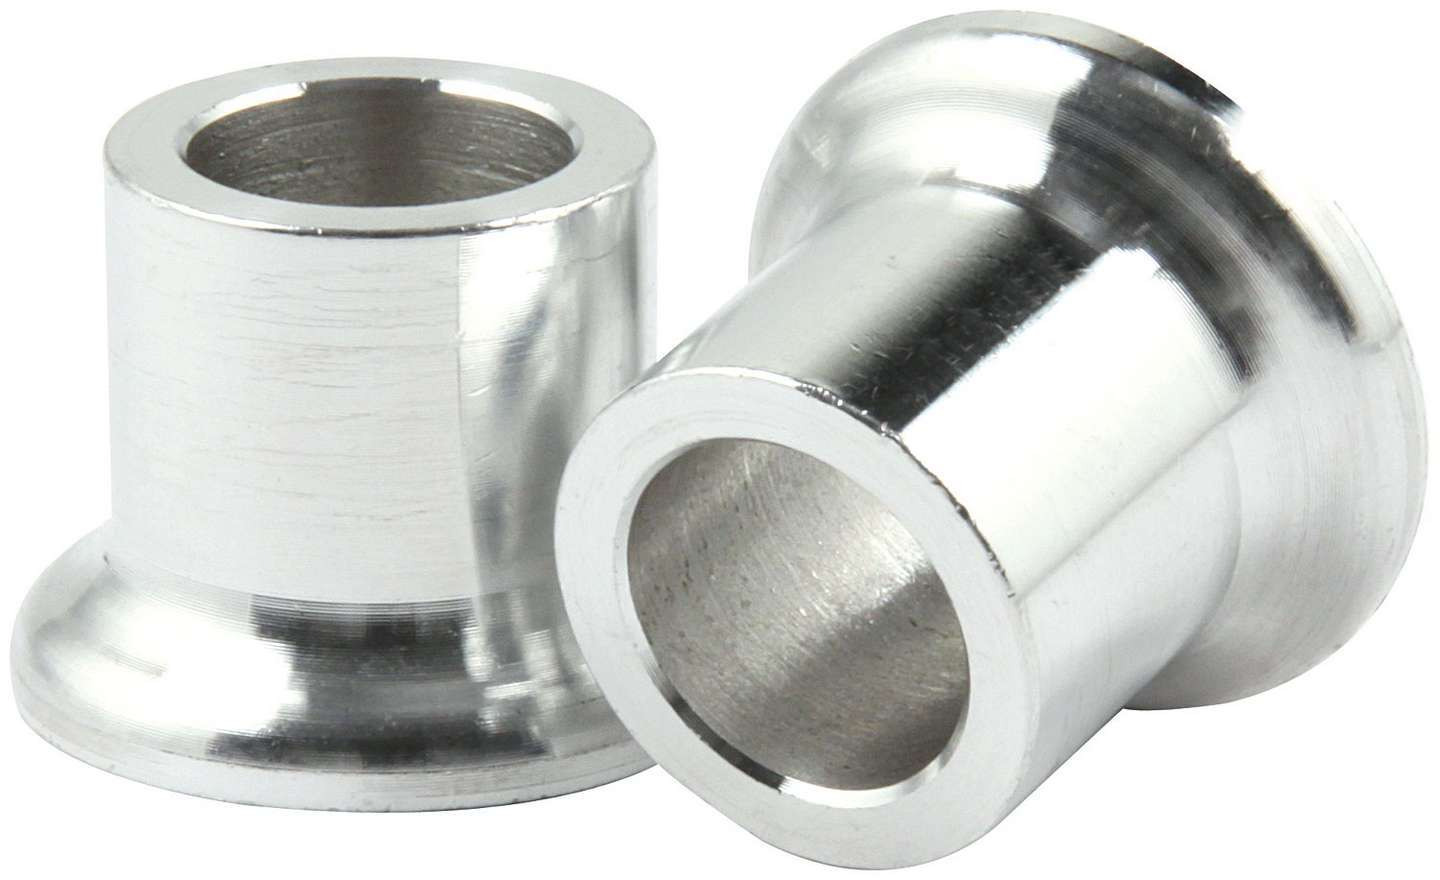 Allstar Performance Tapered Spacers Alum 1/2in ID x 3/4in Long